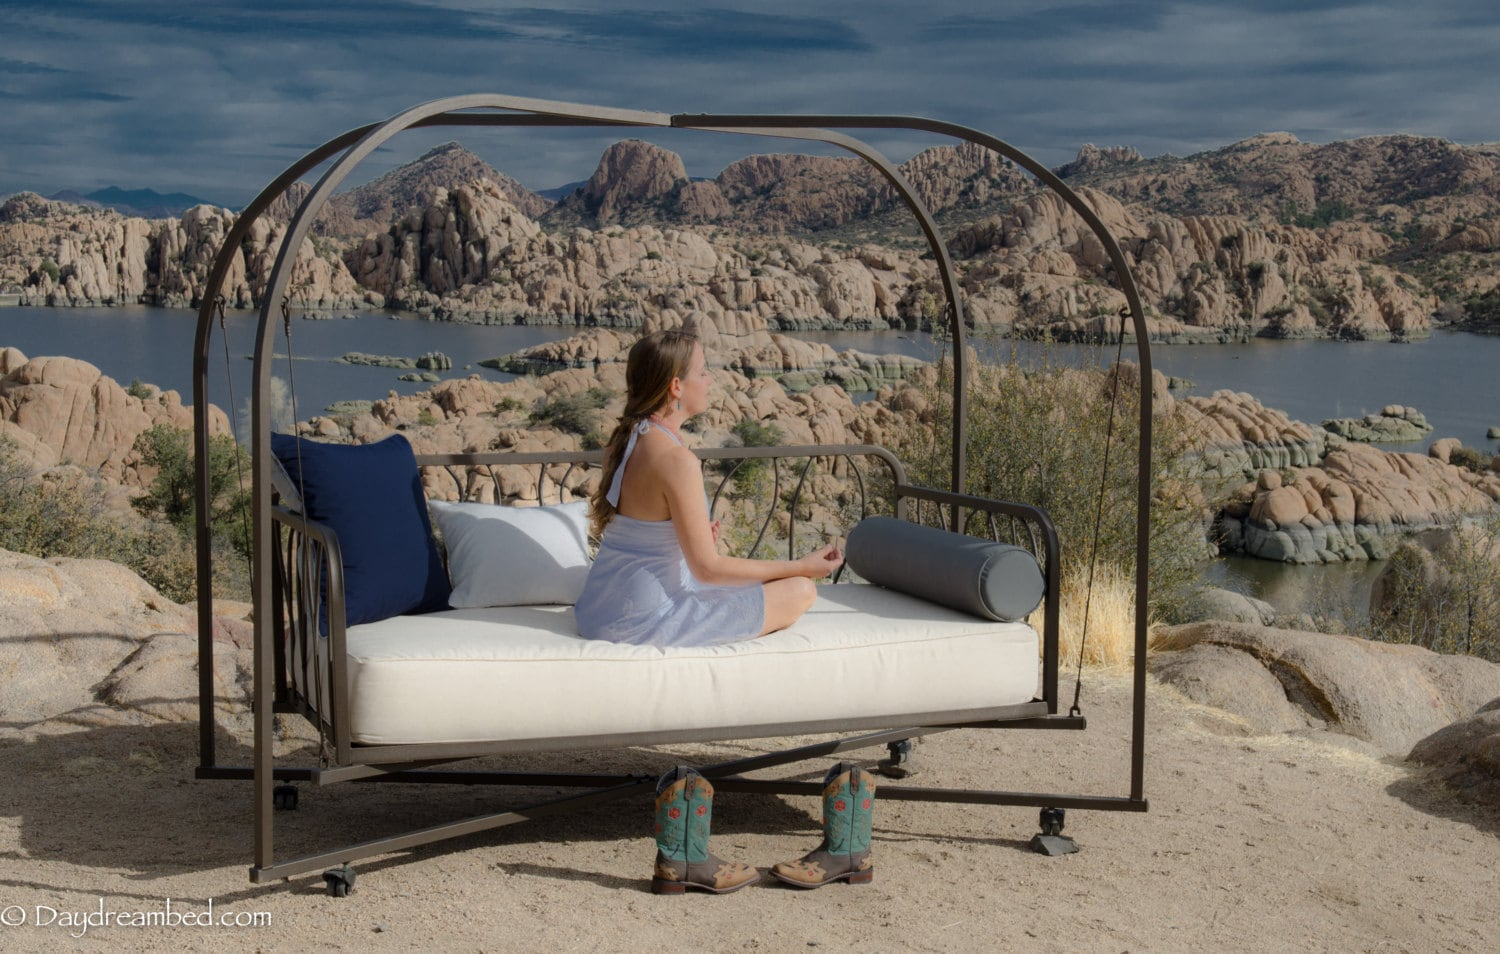 Outdoor hanging bed patio swing daybed custom free by for Outdoor hanging bed swing